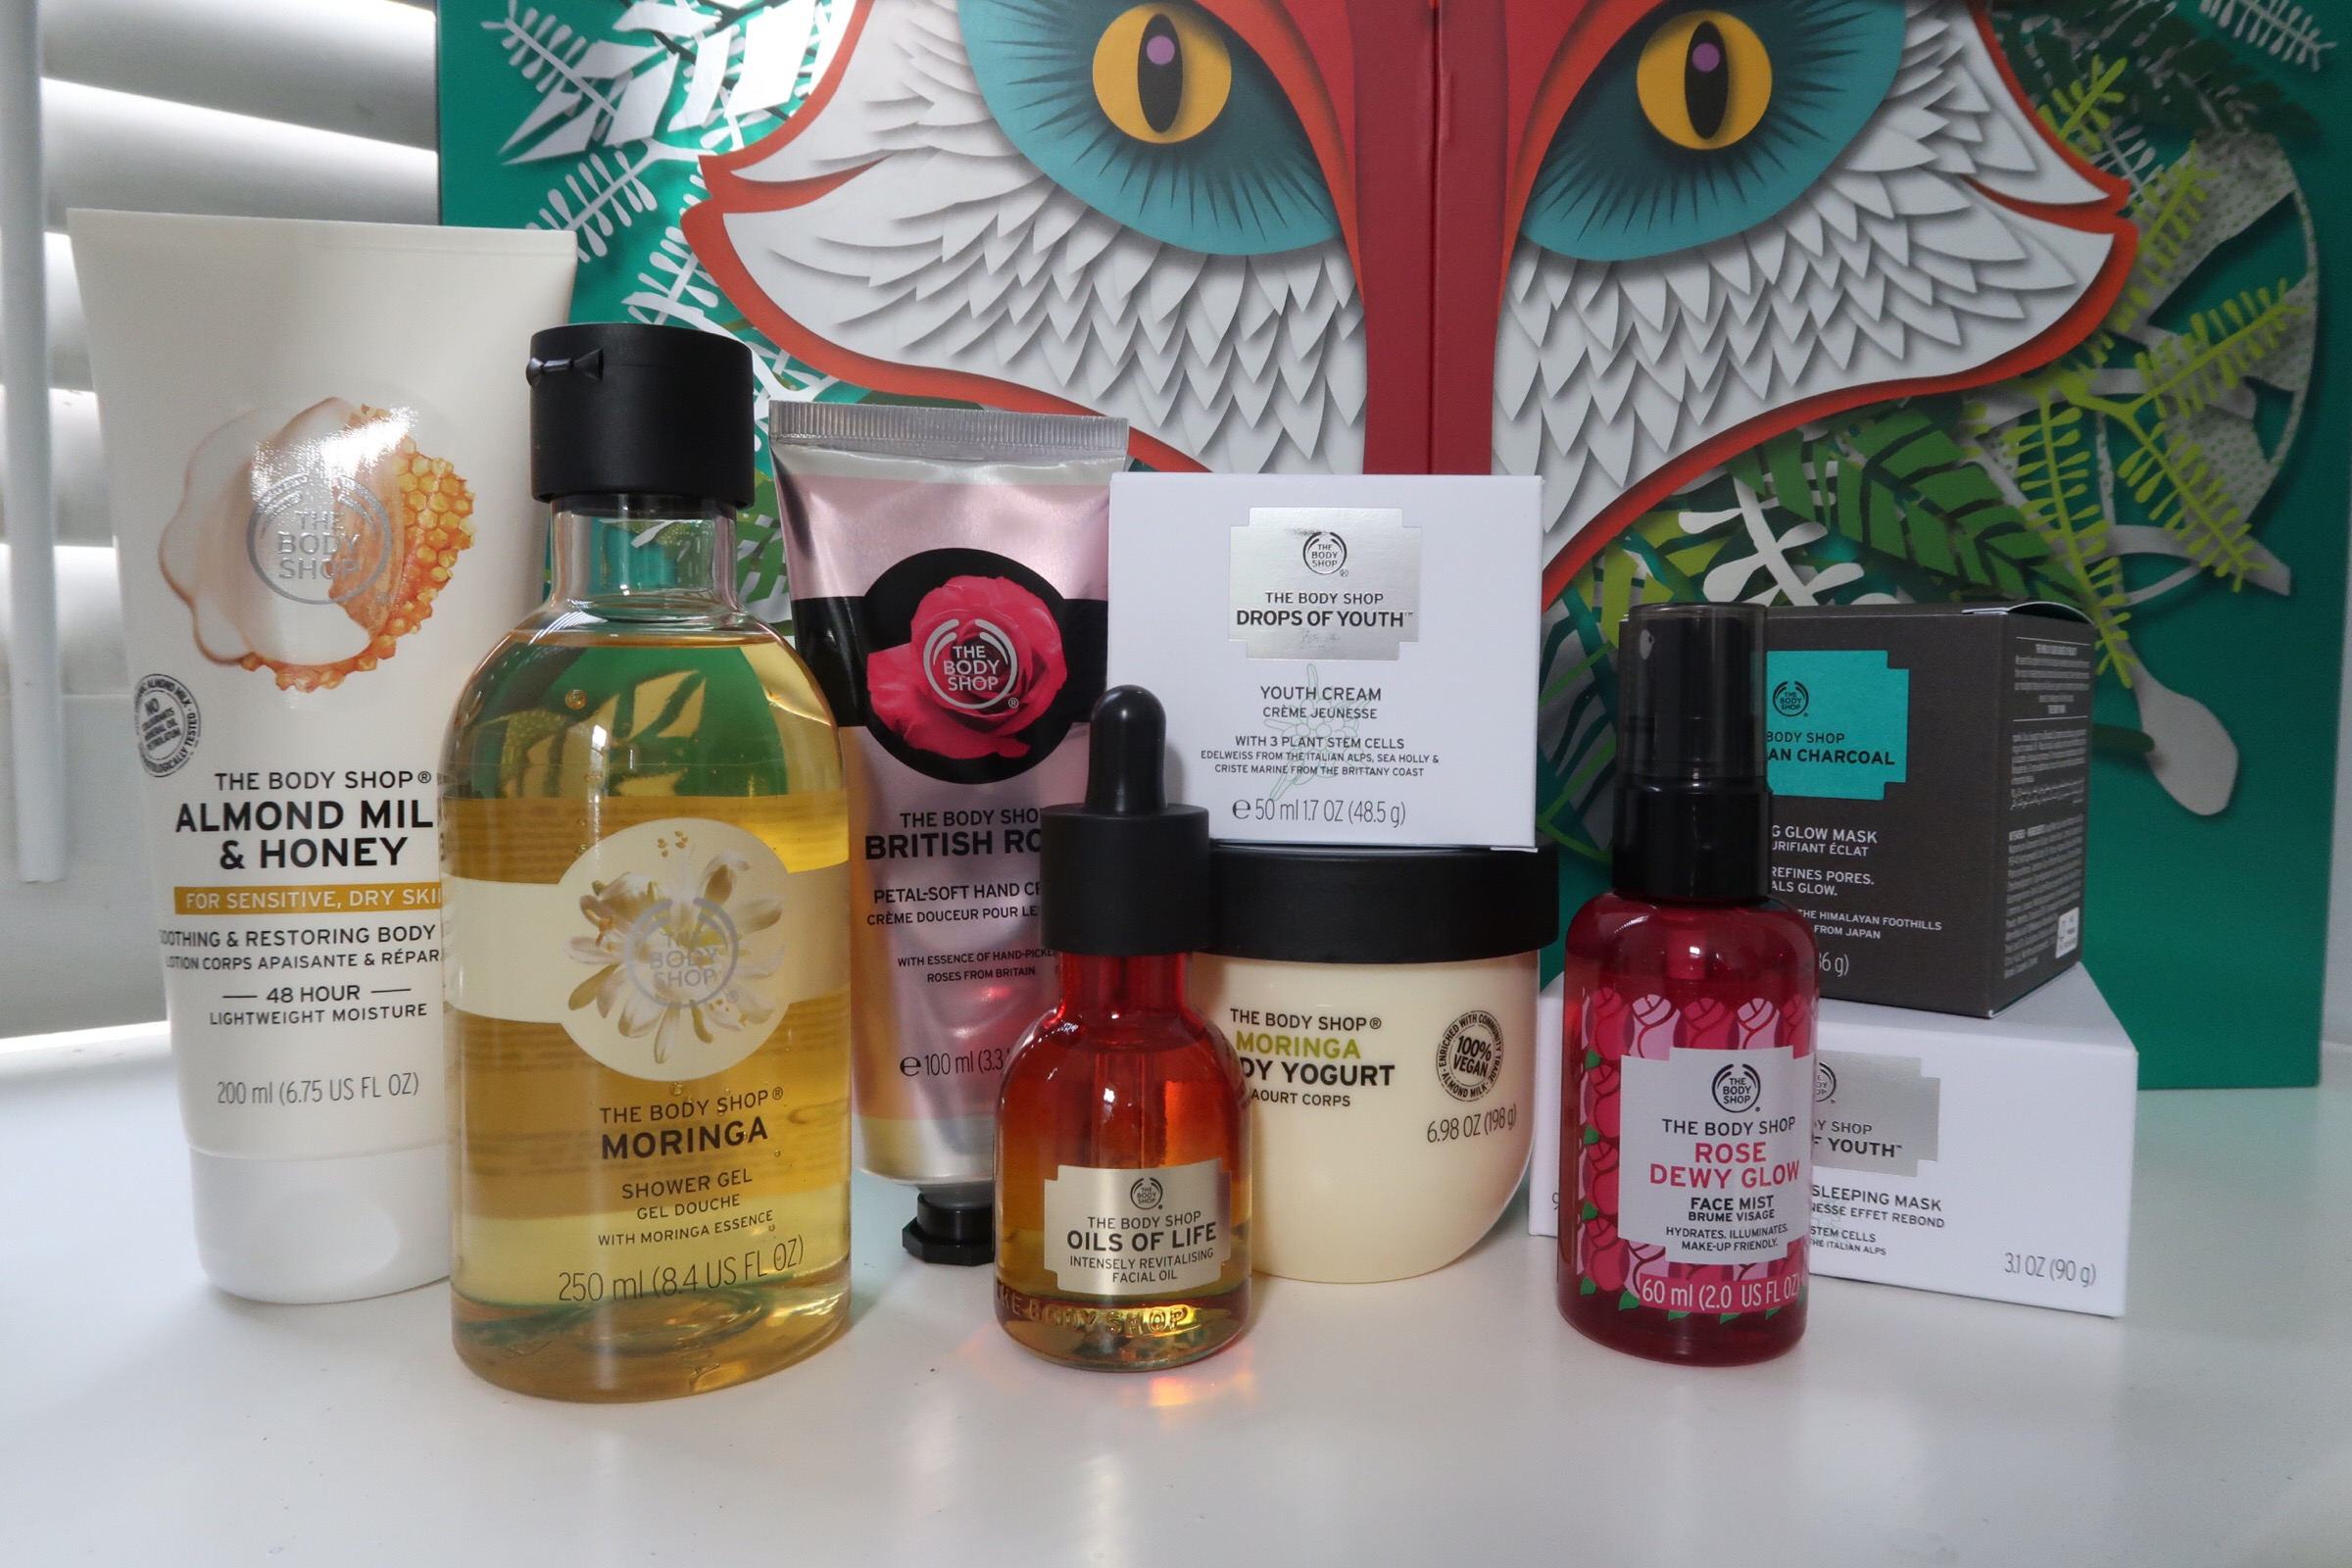 Full size products in The Body Shop Advent Calendar.